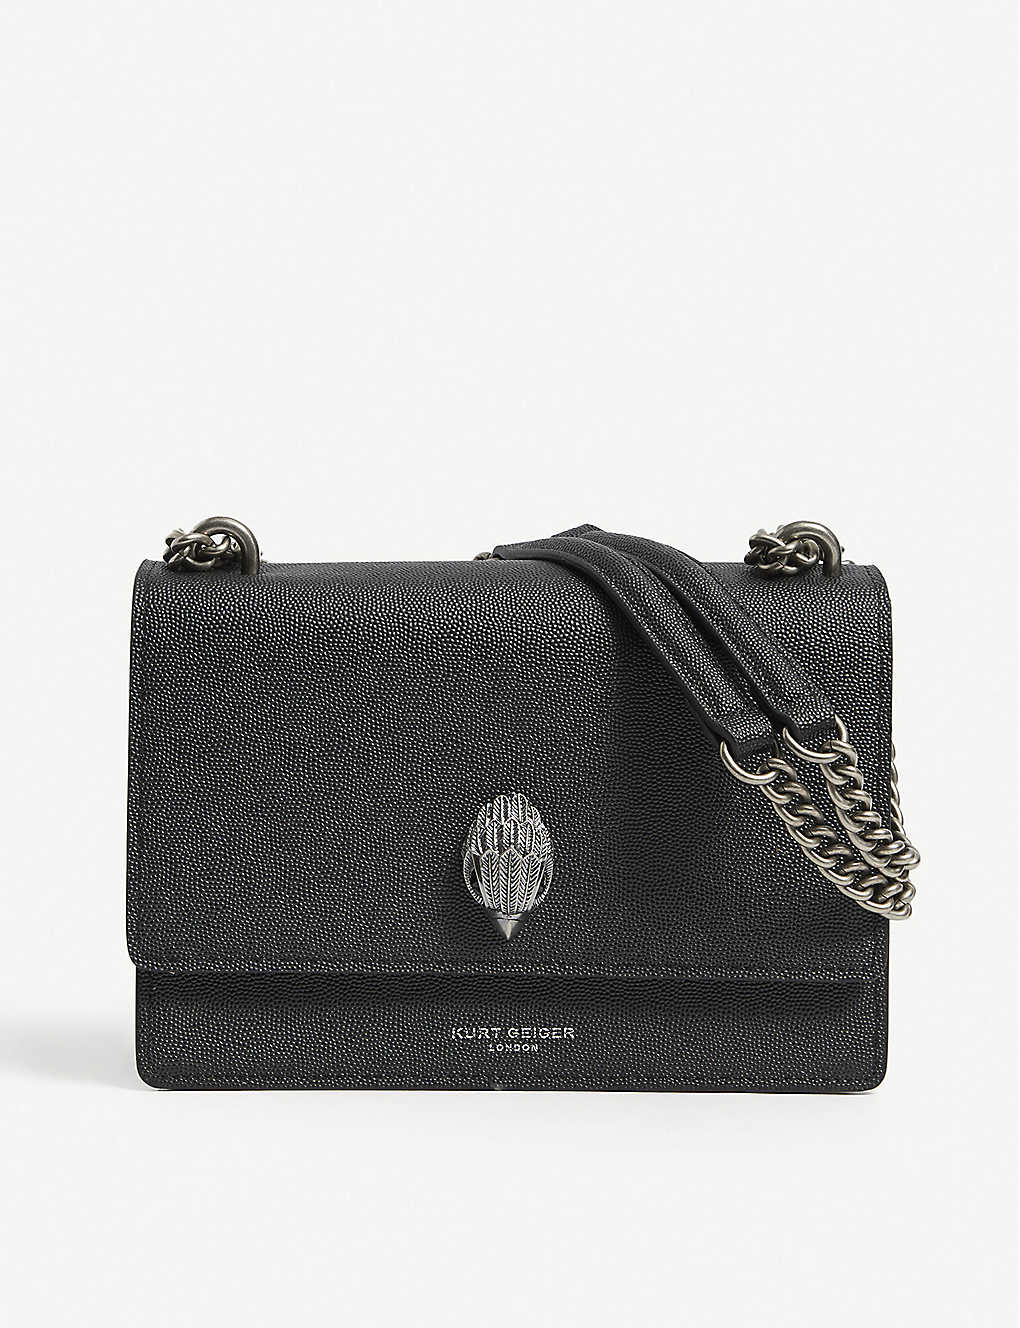 KURT GEIGER LONDON: Shoreditch grained leather cross-body bag